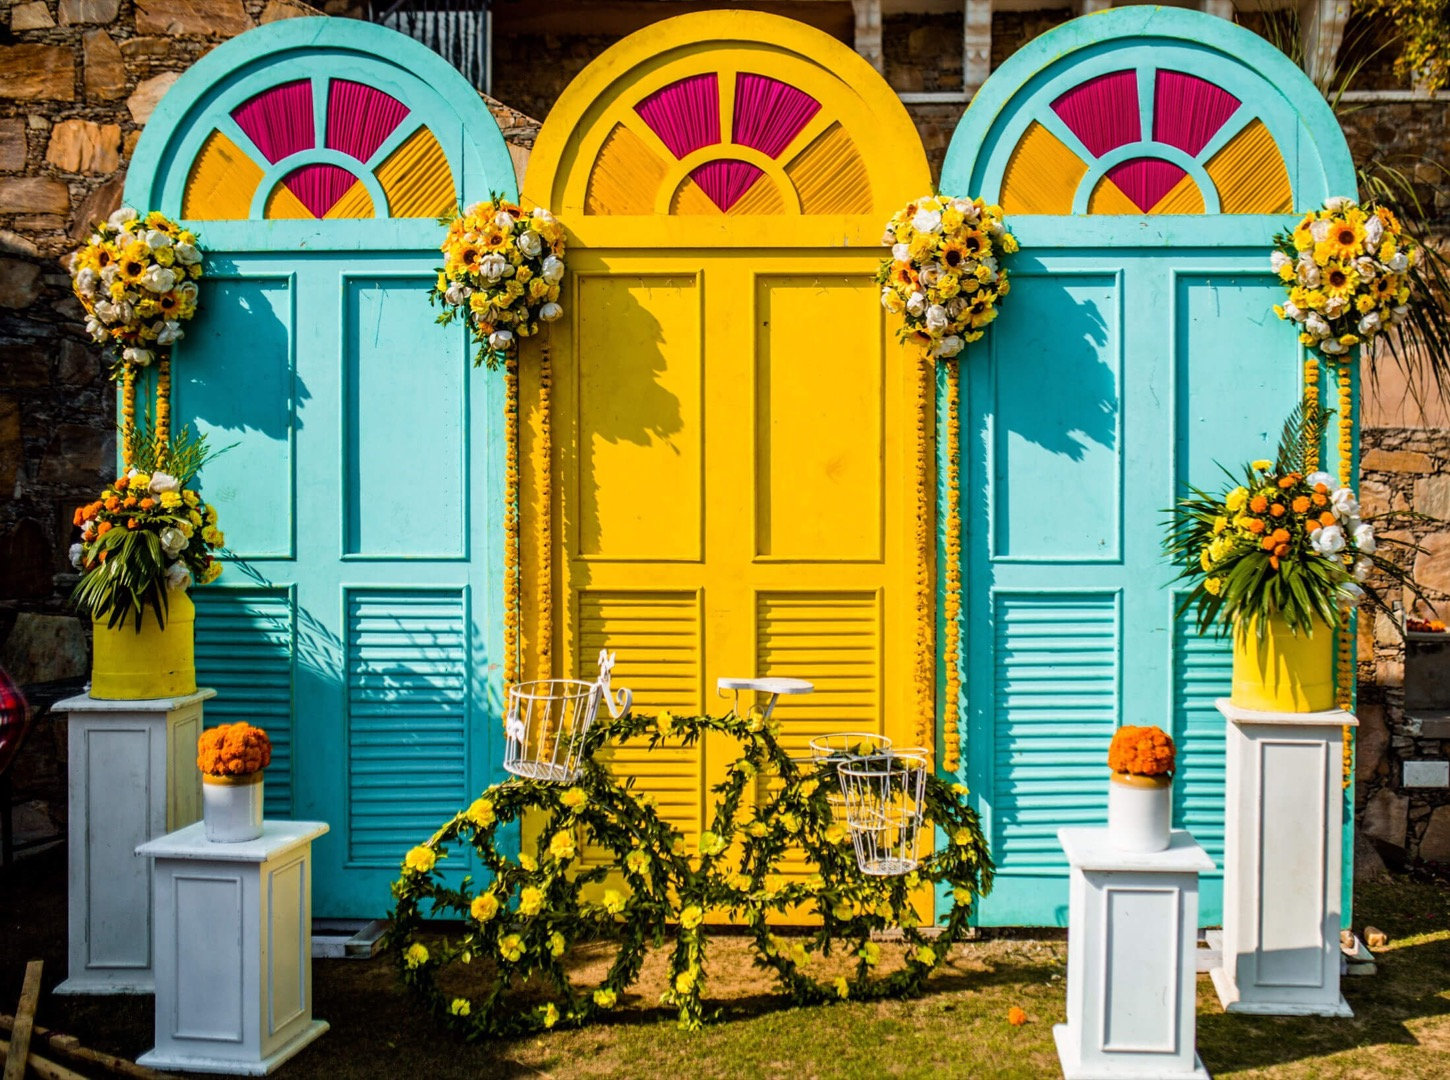 vibrant décor in aqua blue and yellow with cycle and doors